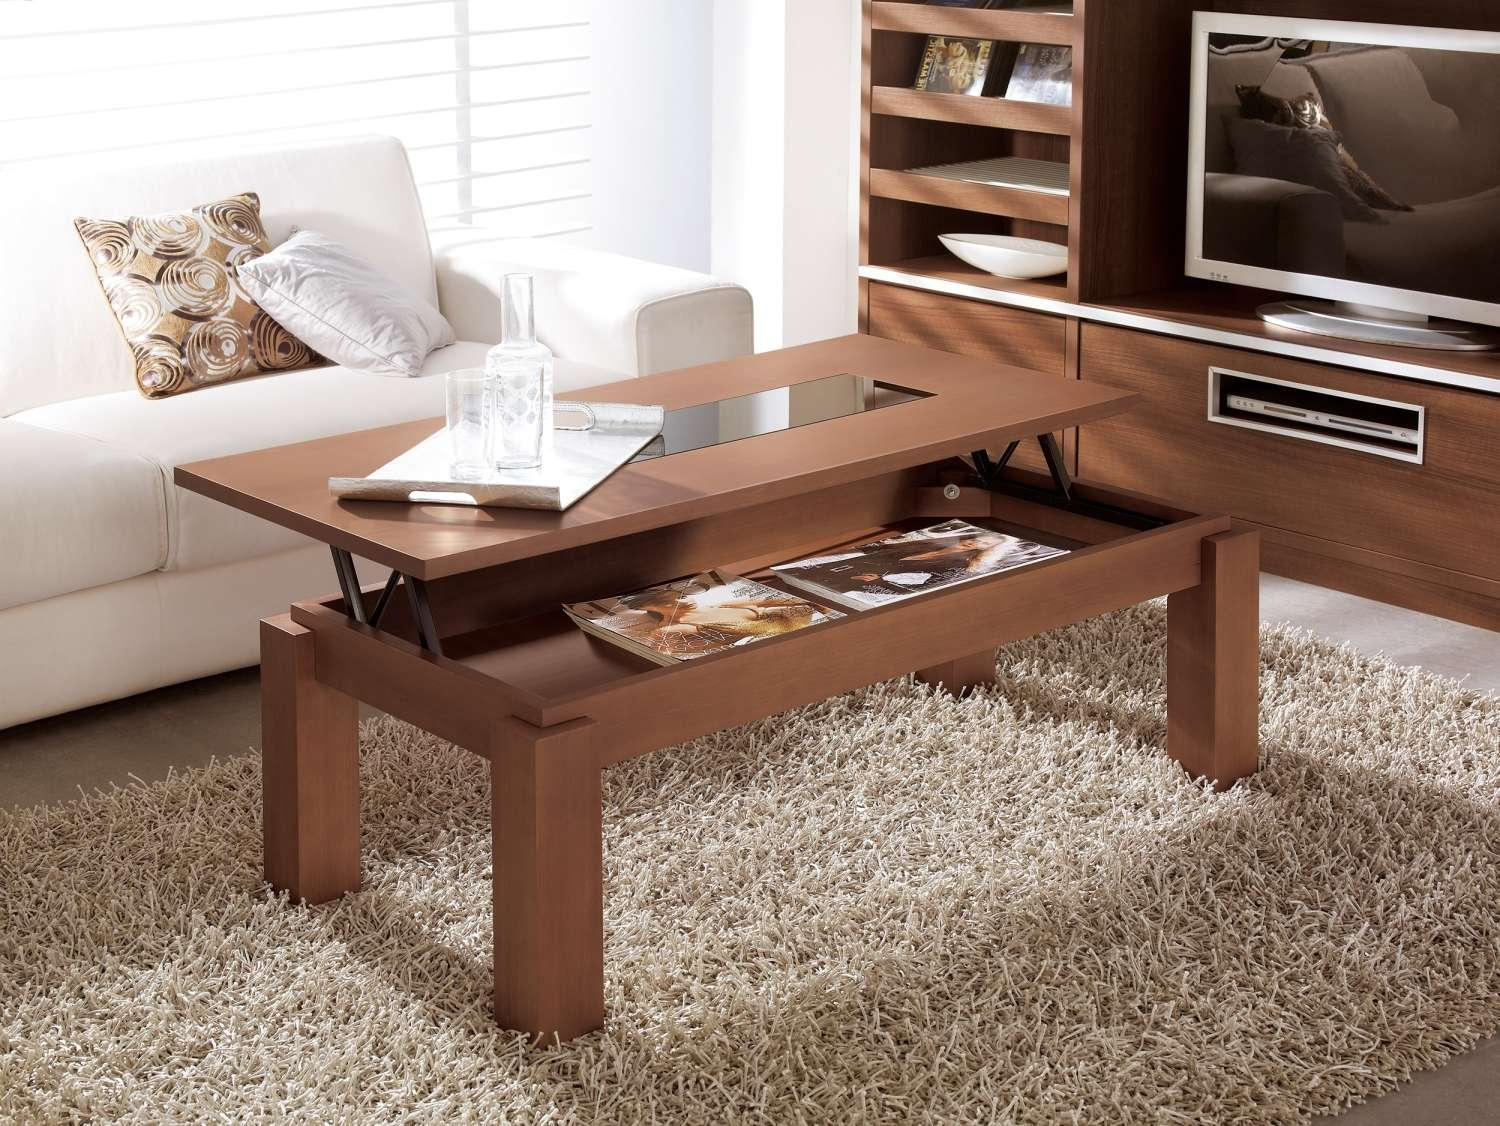 Coffee Tables : Simple Coffee Table Lift Up Wellington Glass Pop With Popular Raise Up Coffee Tables (View 9 of 20)